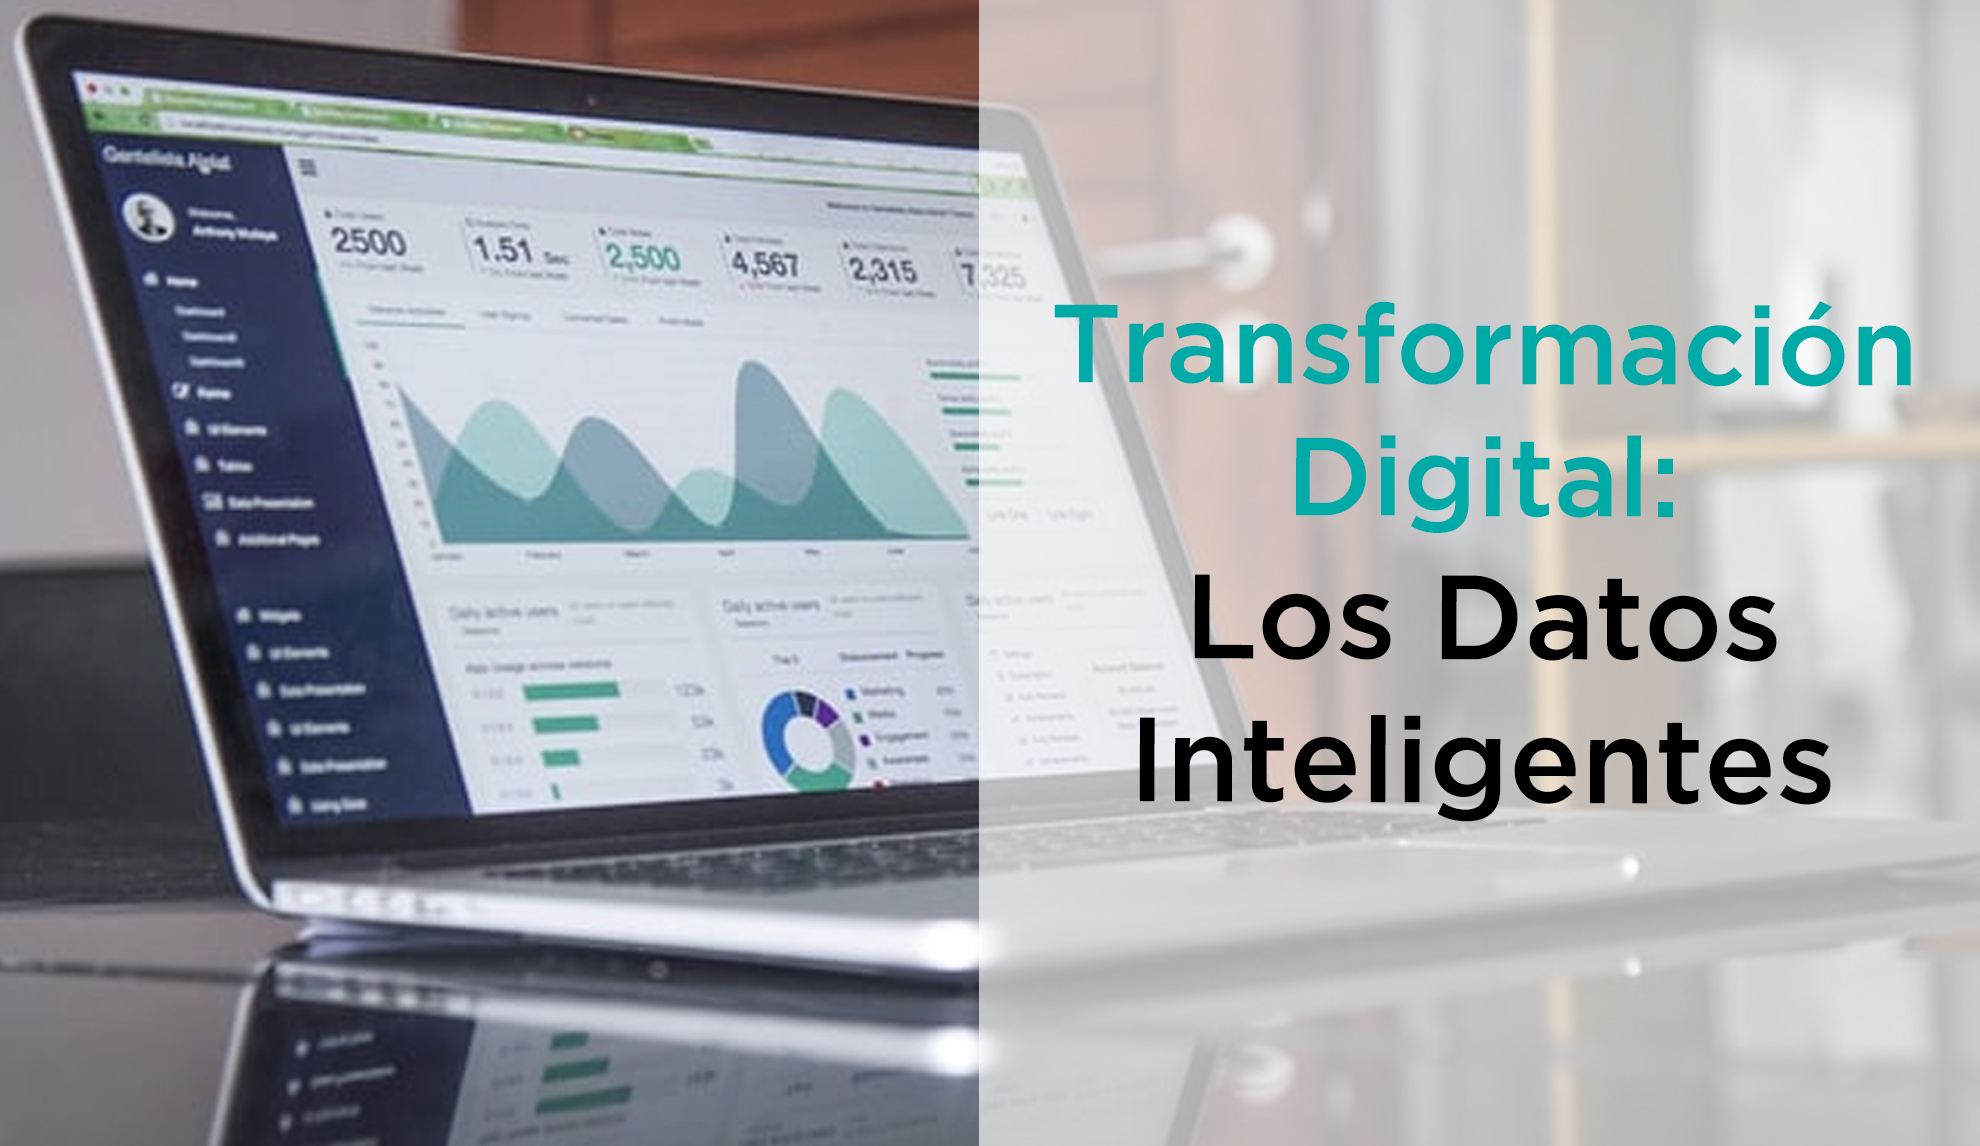 La Transformación Digital y los Datos Inteligentes